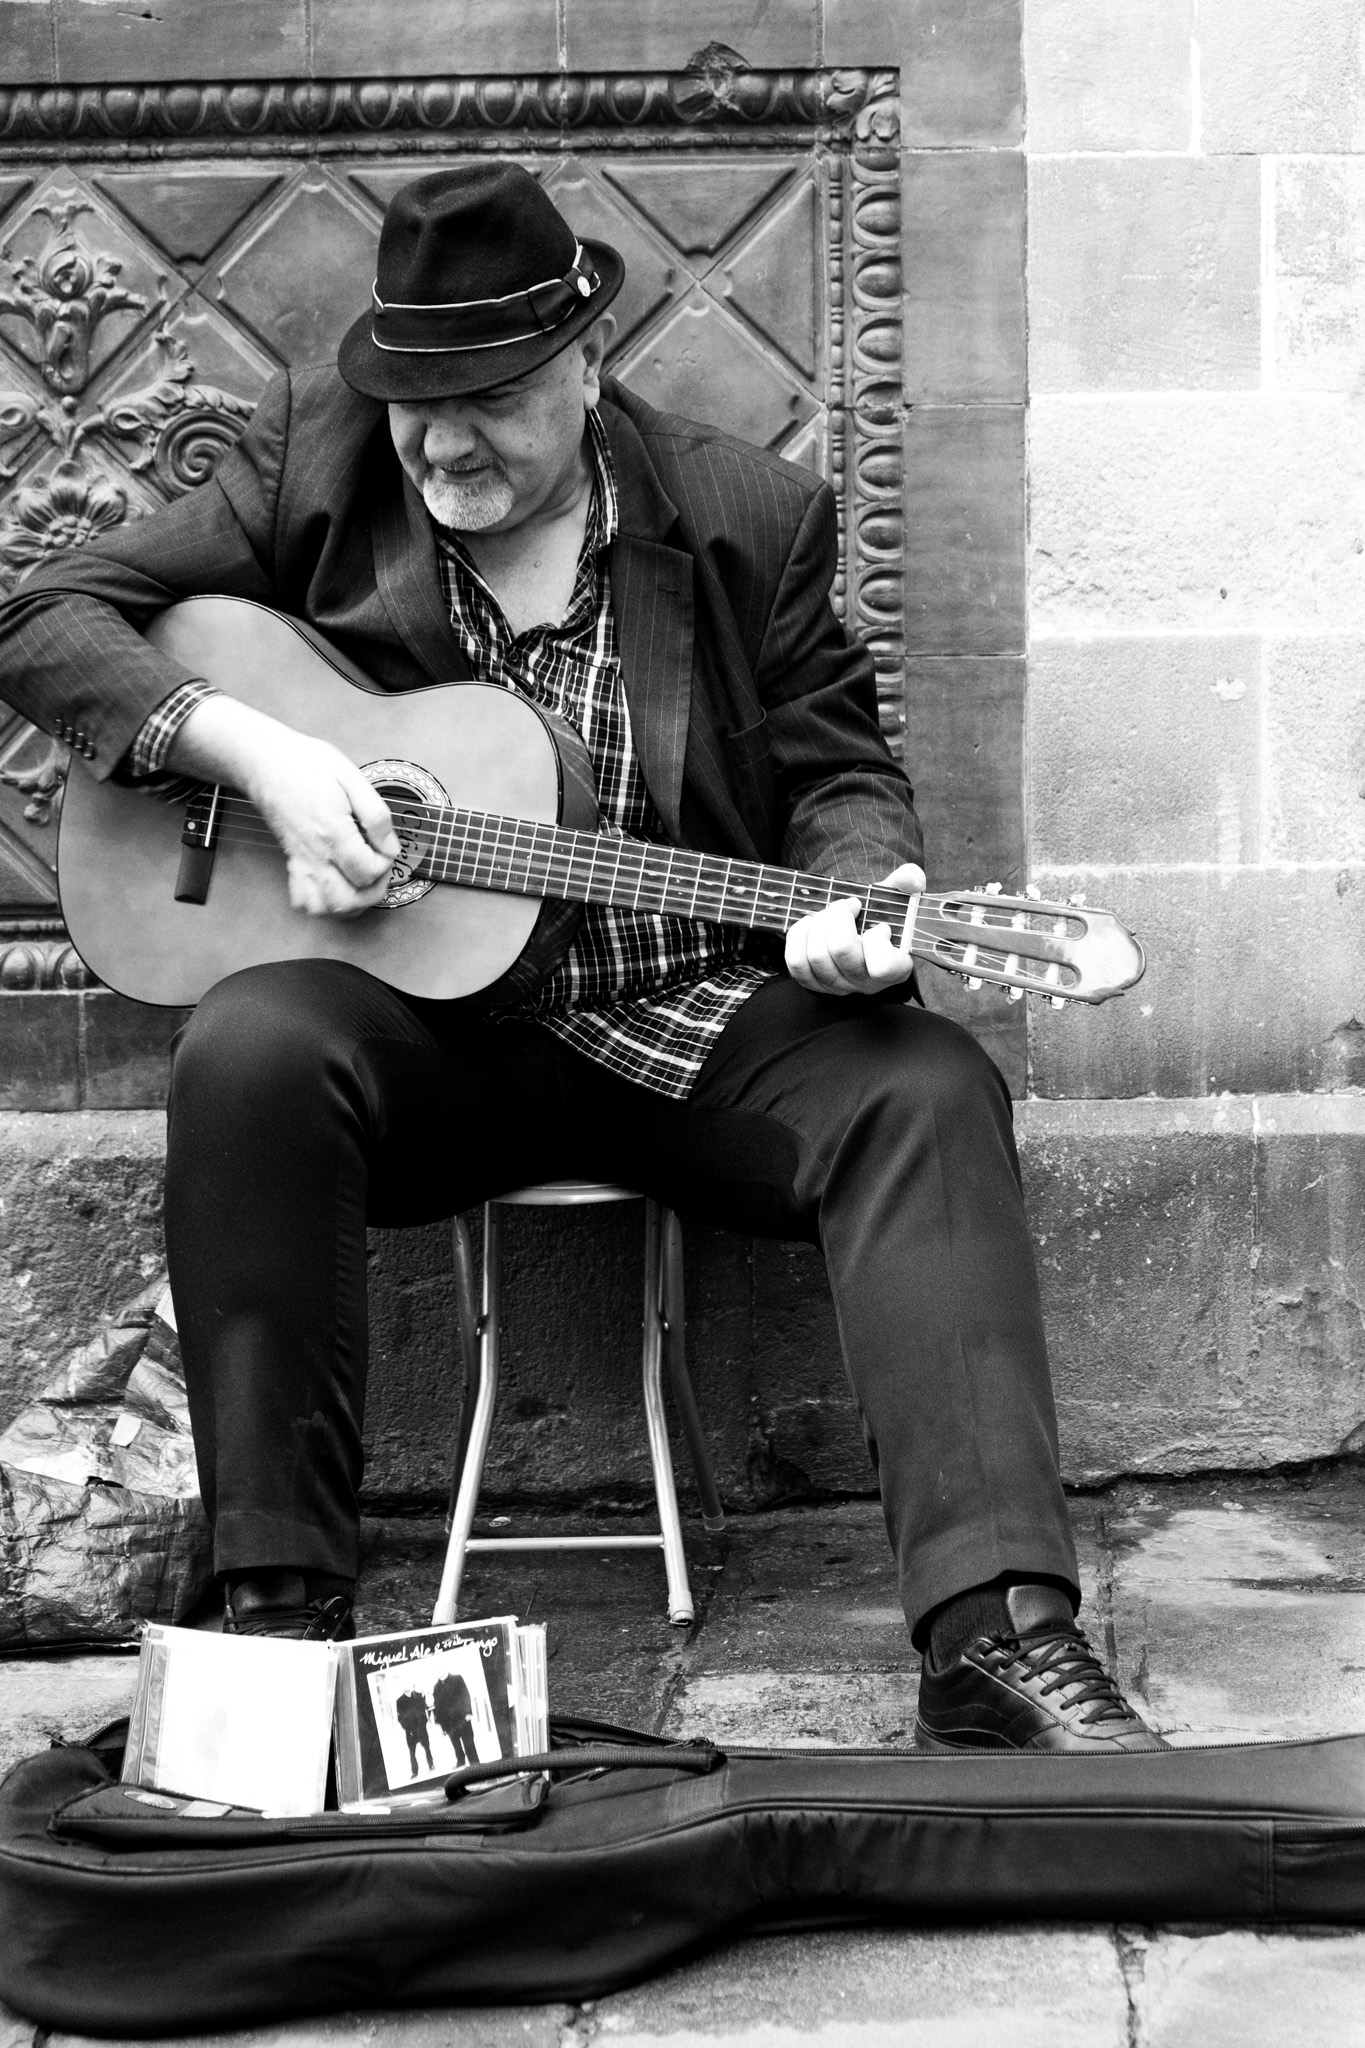 The Catalonians are music lovers and many take to the streets to showcase their talent for singing our favourite boleros and playing the Spanish guitar.